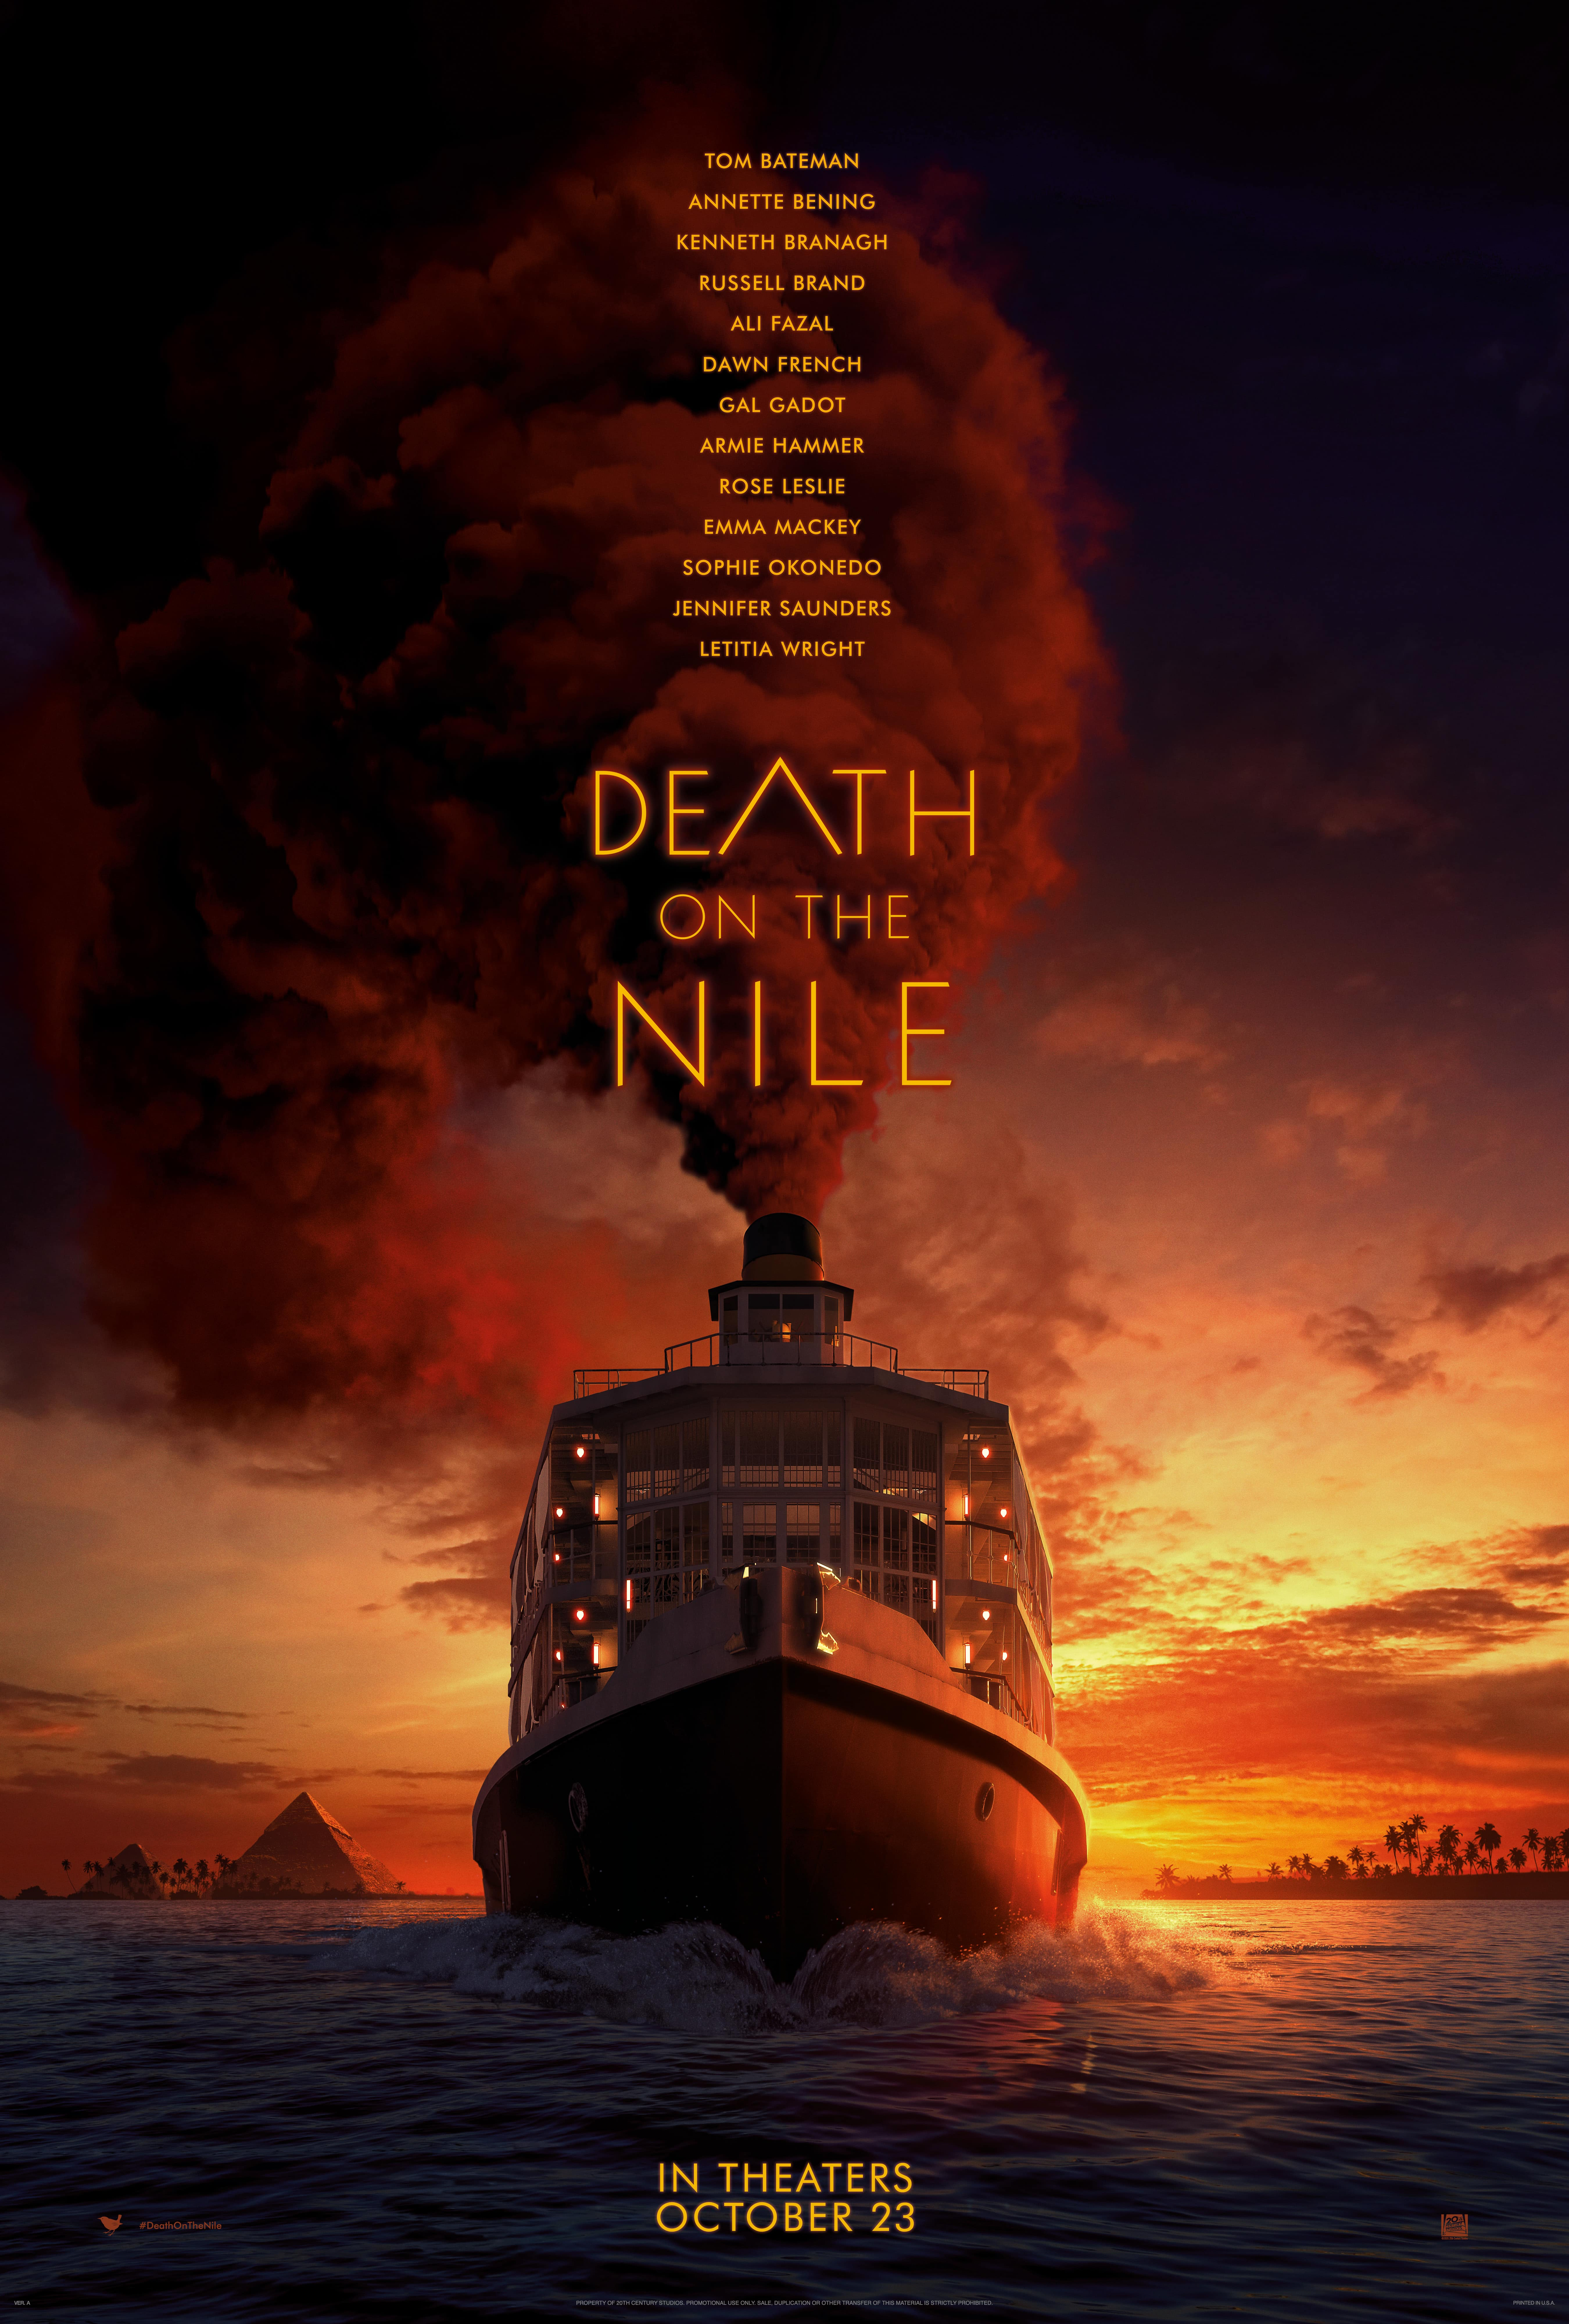 First Look at Death On The Nile